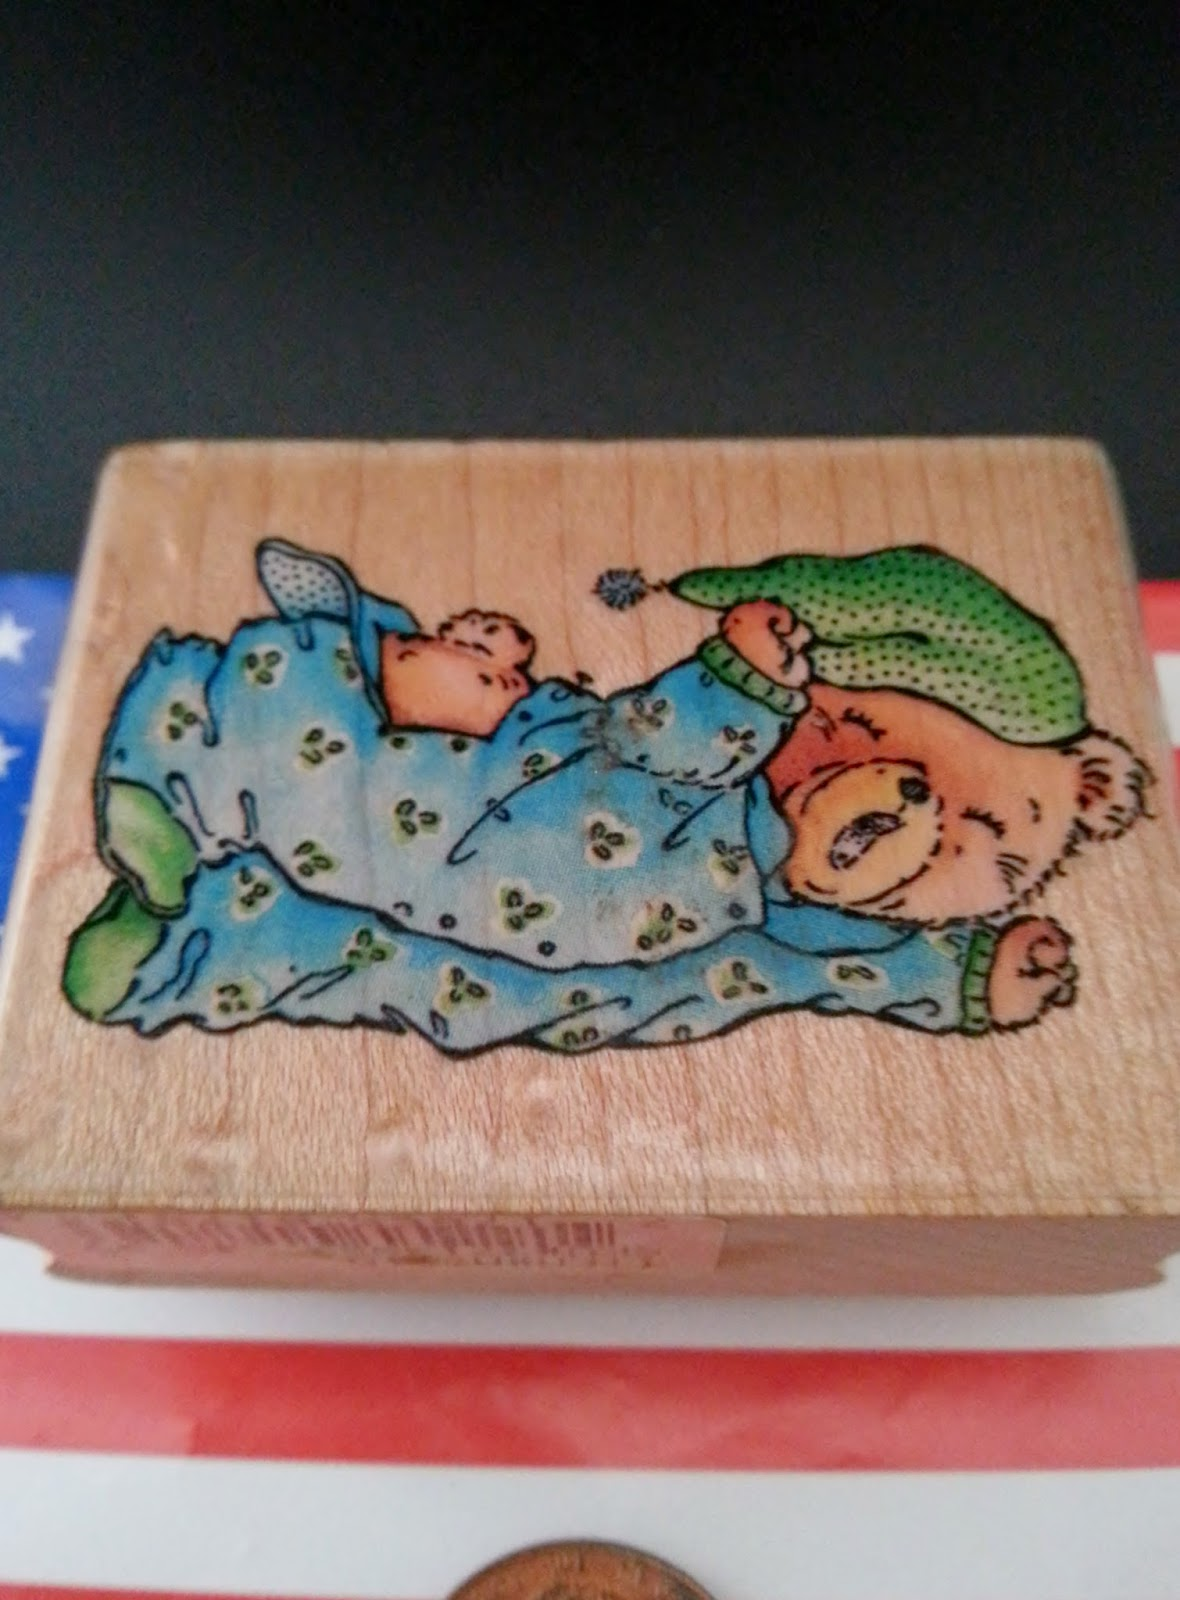 http://www.storenvy.com/products/11596985-bedtime-bear-a781d-wood-mount-rubber-stamp-stampede-rubber